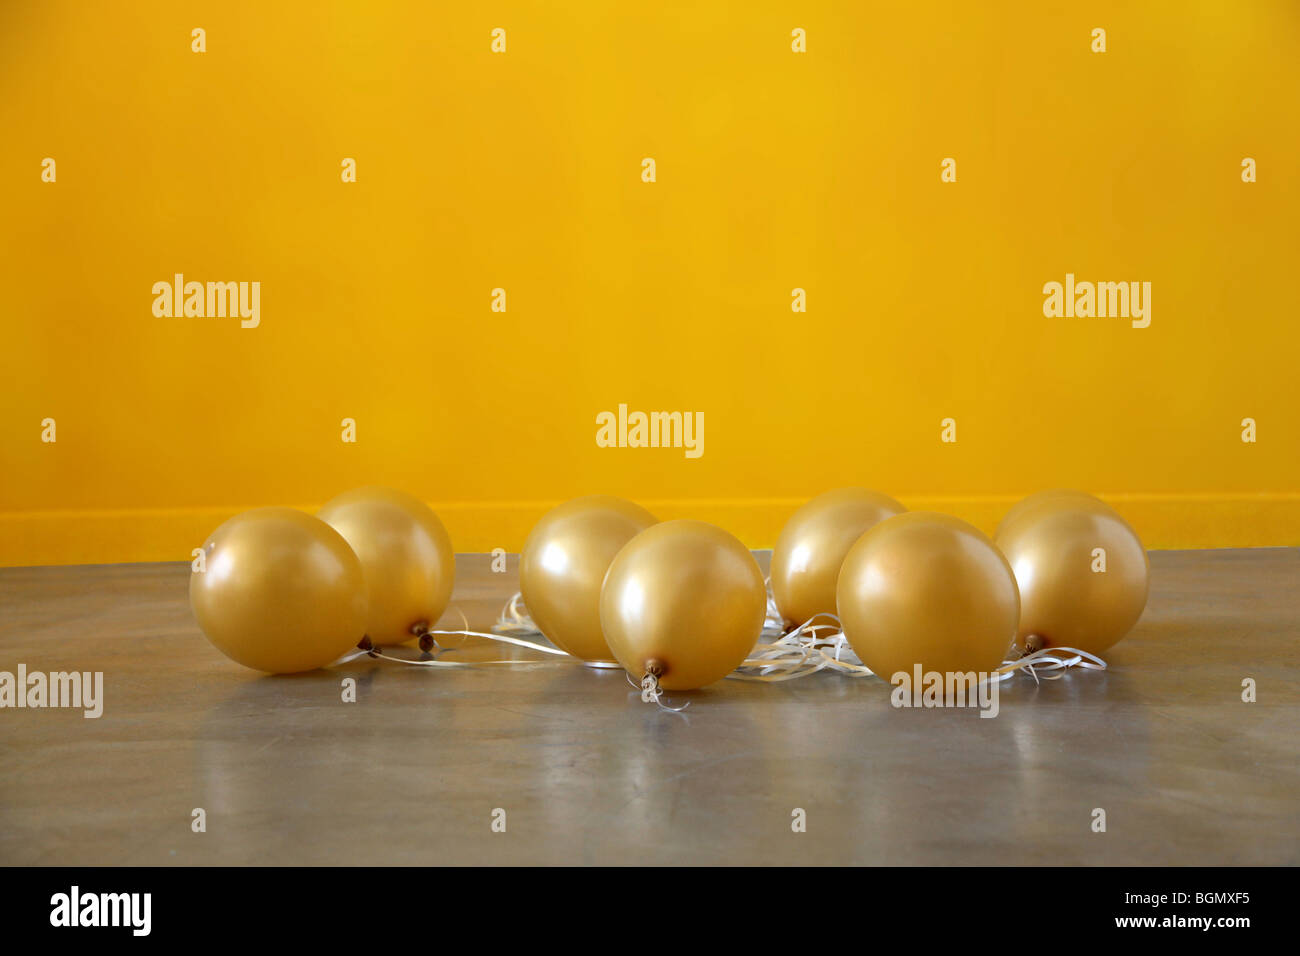 gold balloons sink to the floor after the party deflated - Stock Image